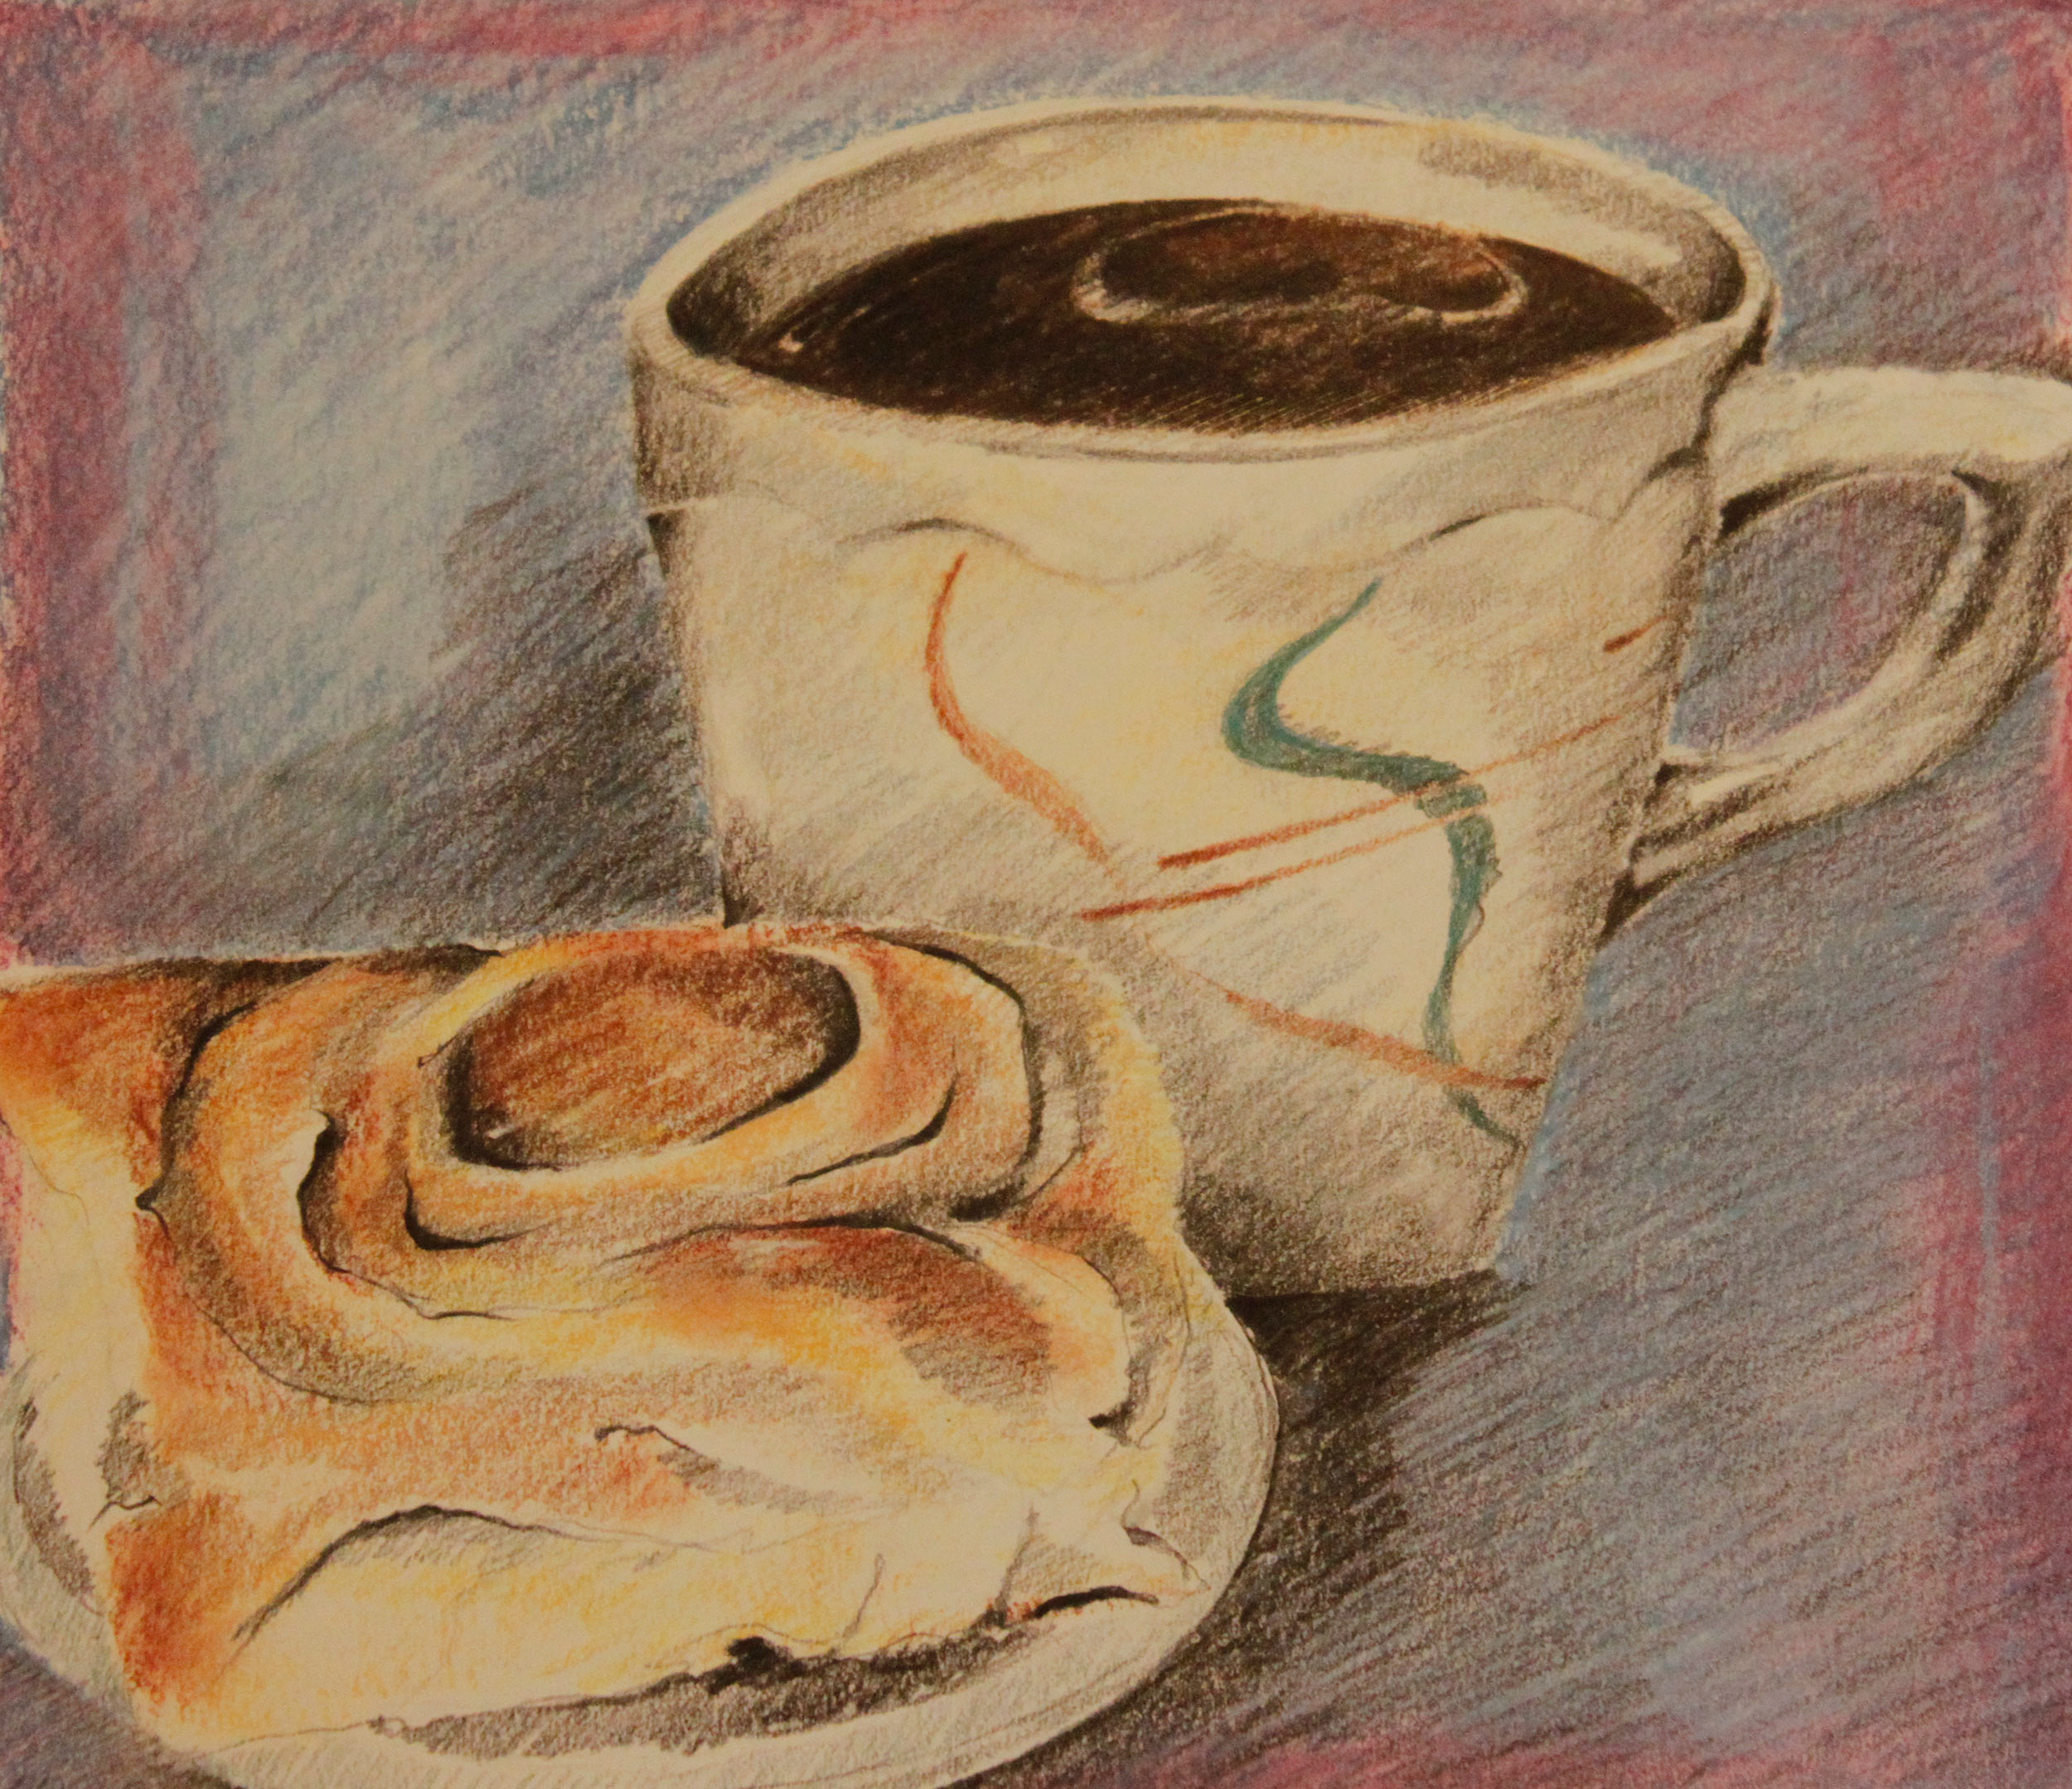 Cinnamon-&-Coffee-out